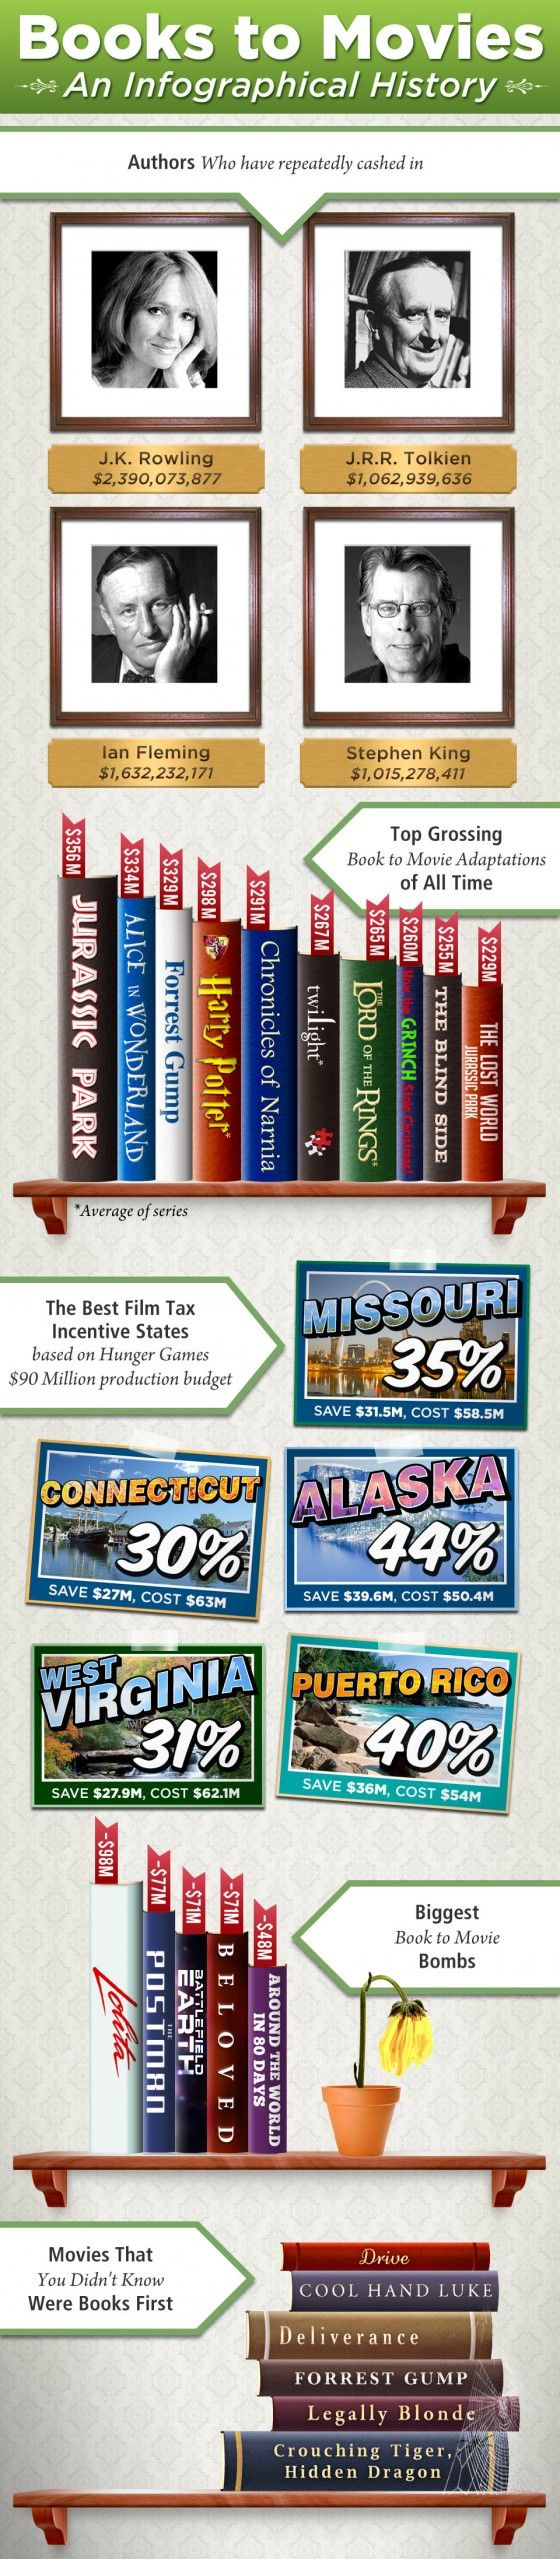 Interesting book to movie facts!Infographic History, Movie Facts, Libraries Display, Interesting Book, Movie Based On Book, Book Infographic, Book To Movie, Movie Infographic, Book Facts